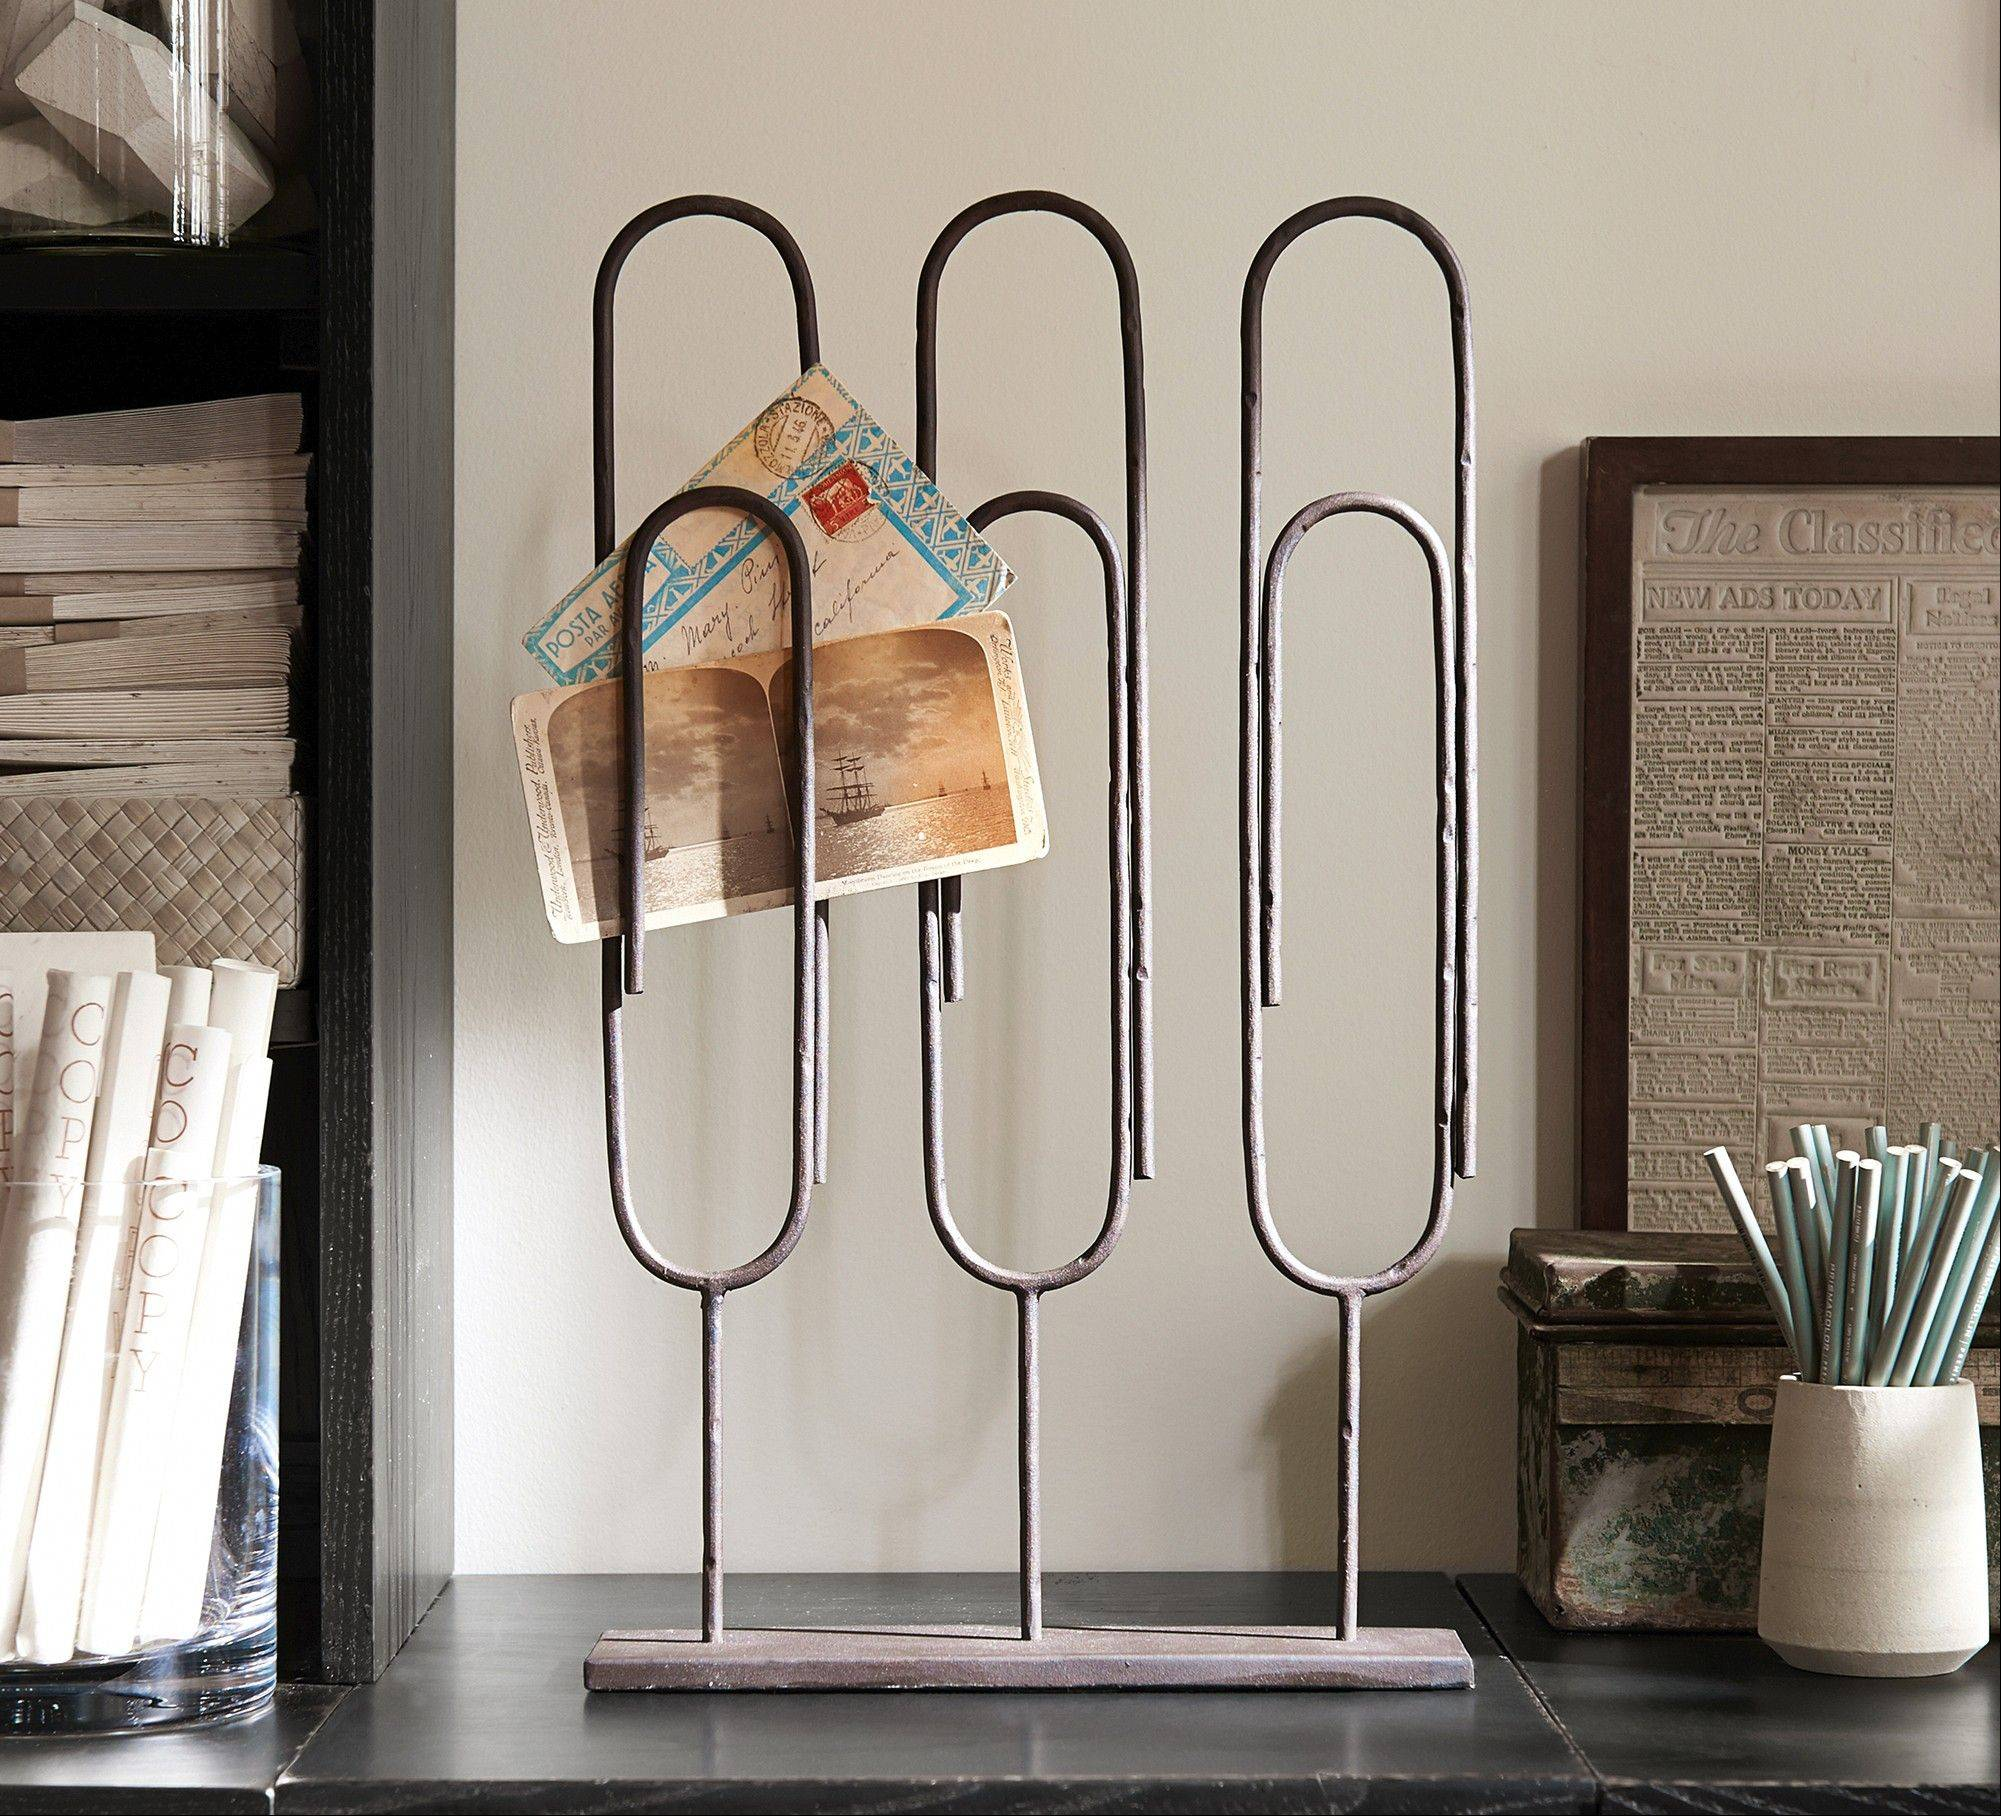 Display photos and keepsakes in the Standing Paper Clip, with has three large clips for organizing memorabilia.